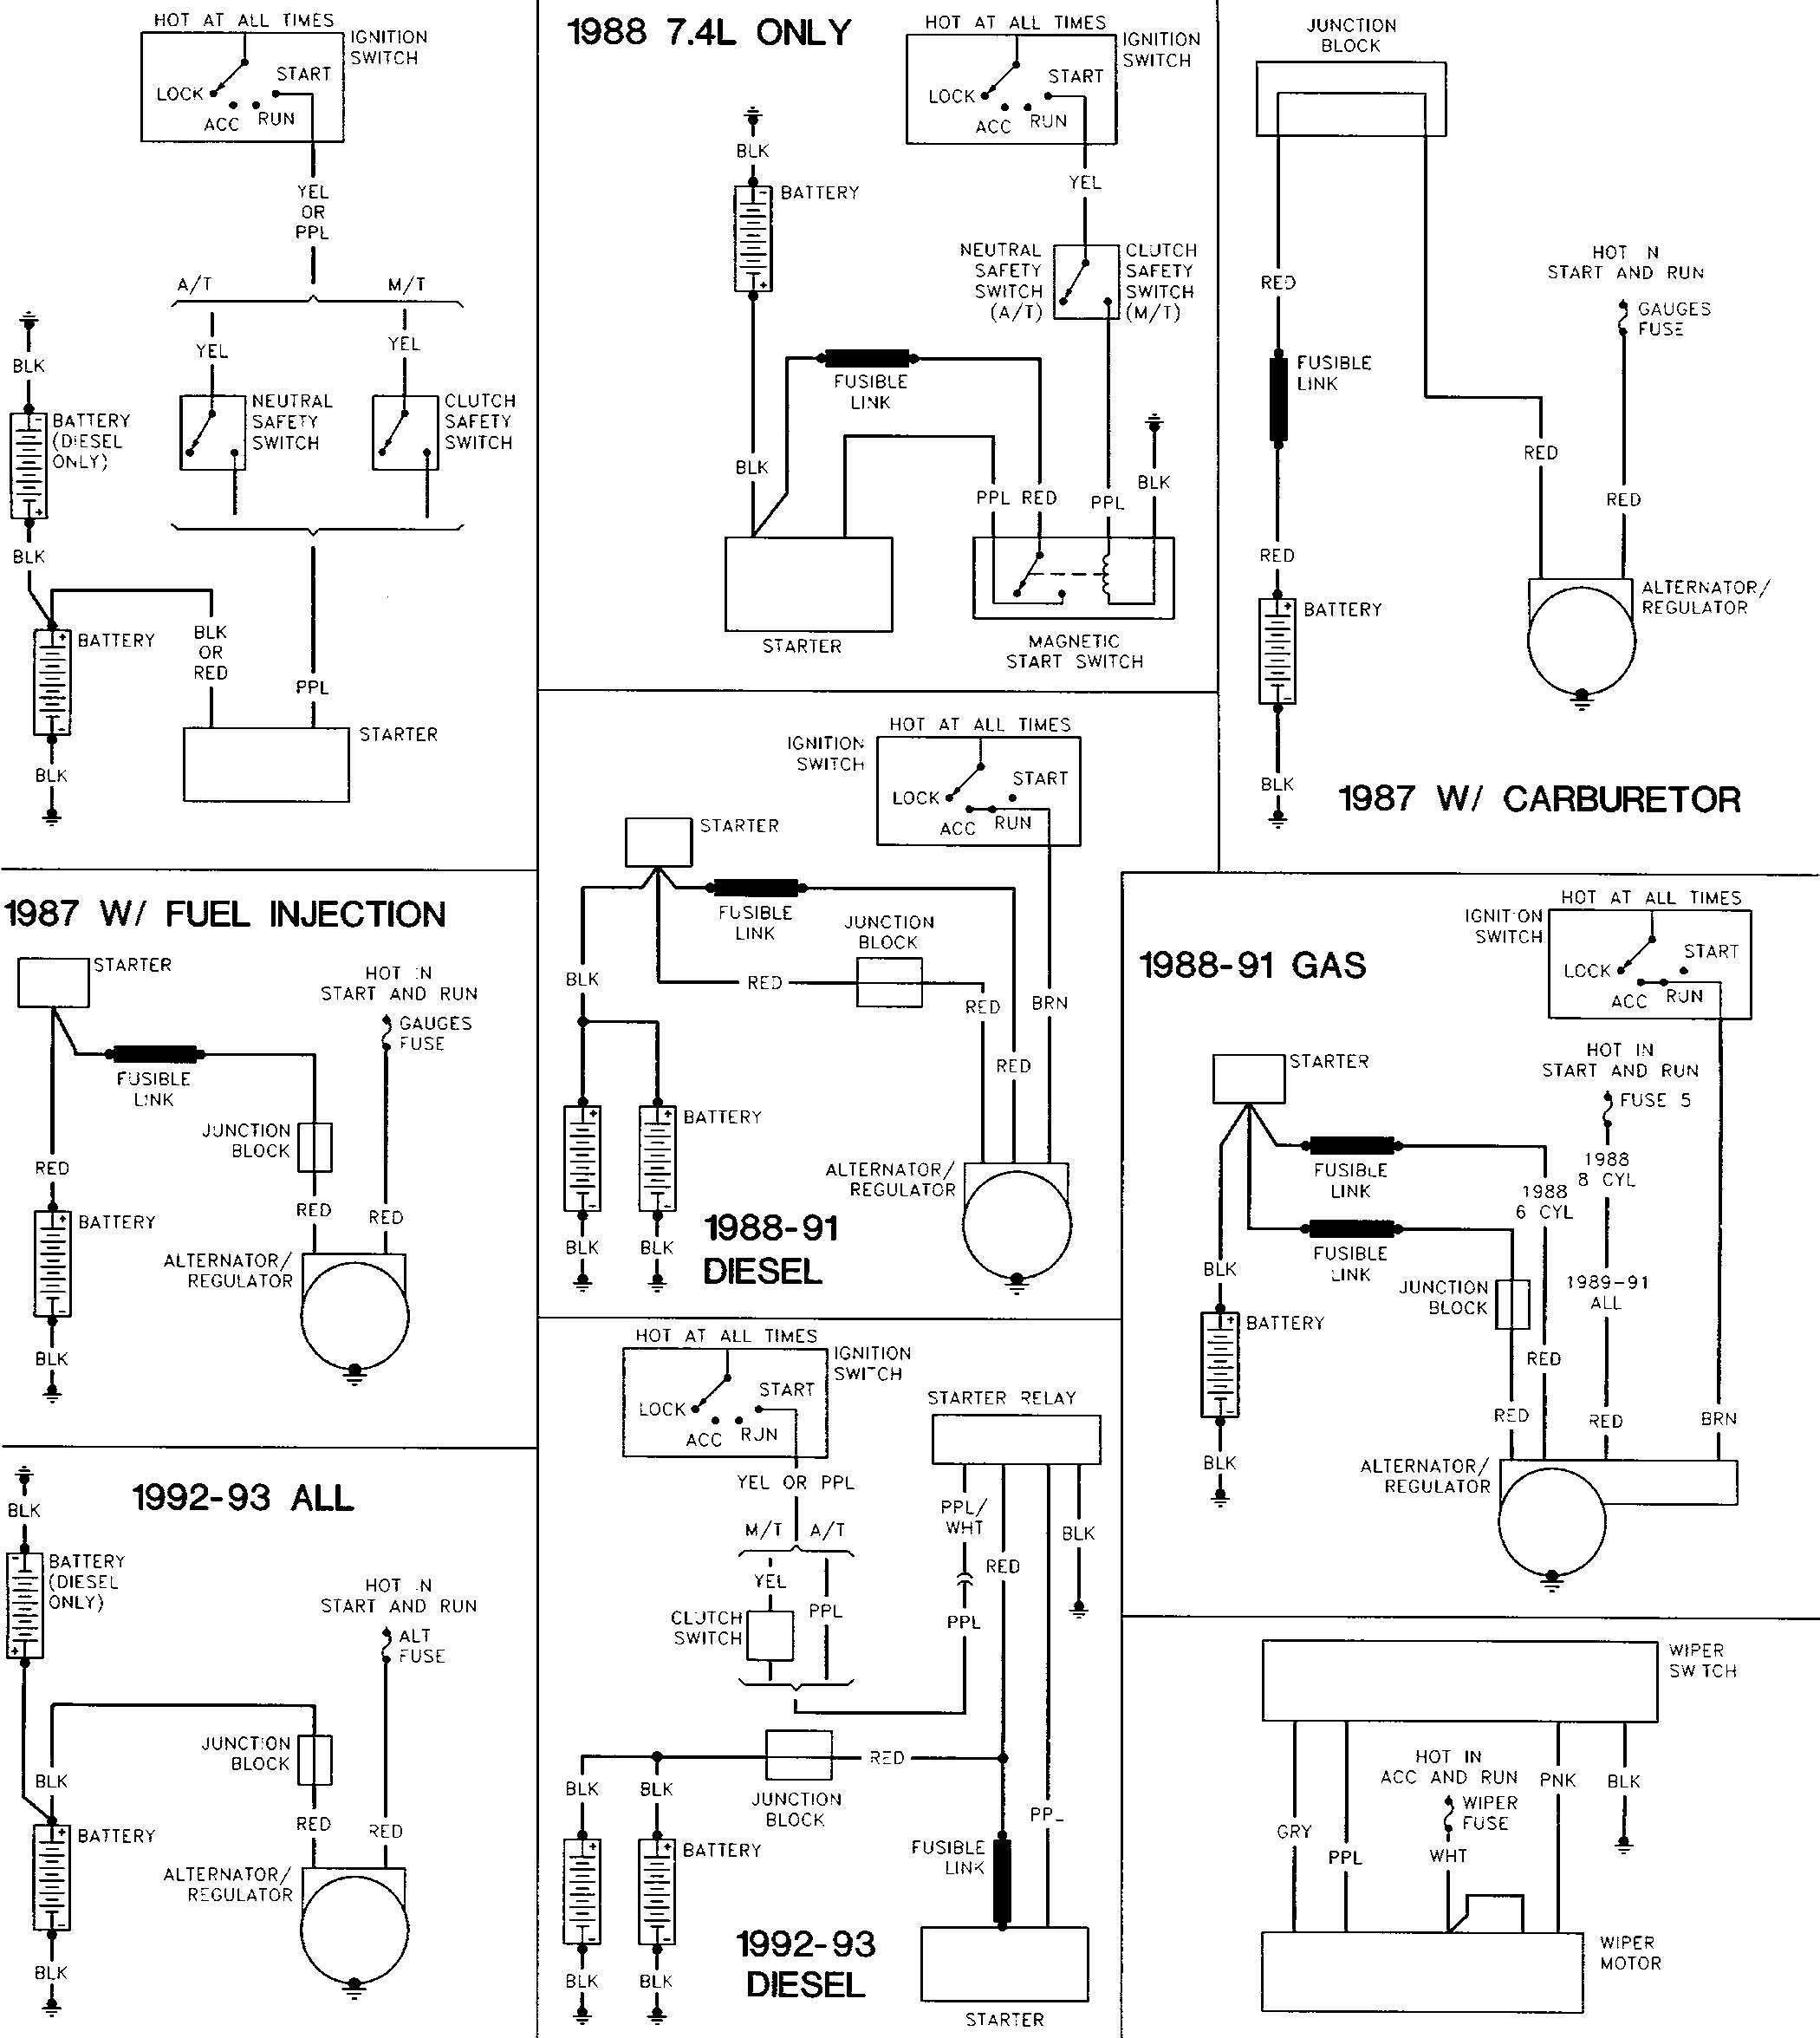 Fleetwood Motorhome Chassis Wiring Diagrams | Wiring Diagram - Fleetwood Motorhome Wiring Diagram